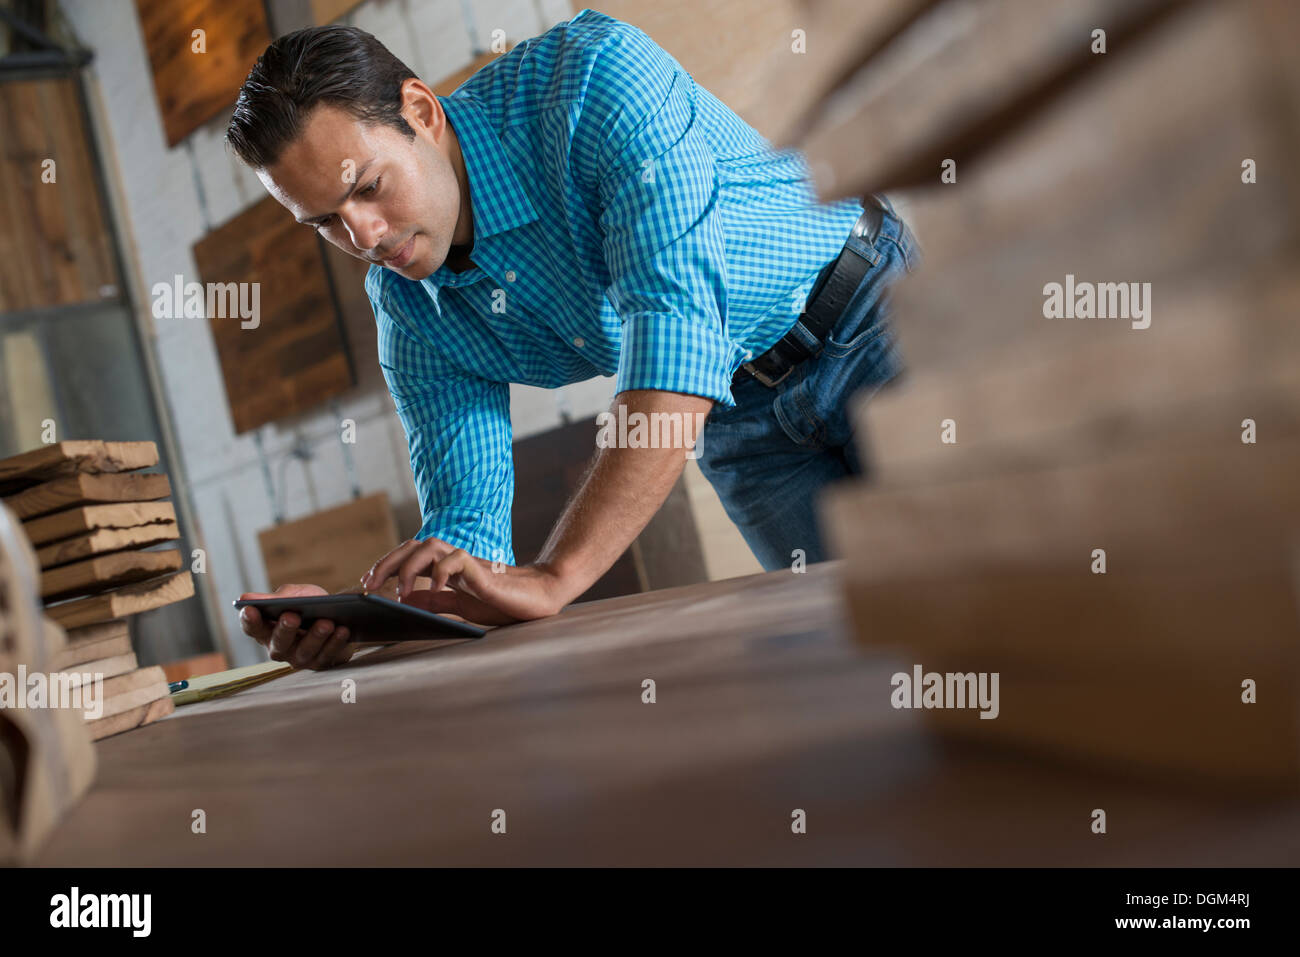 A young man in a workshop Using a digital tablet in his work. - Stock Image